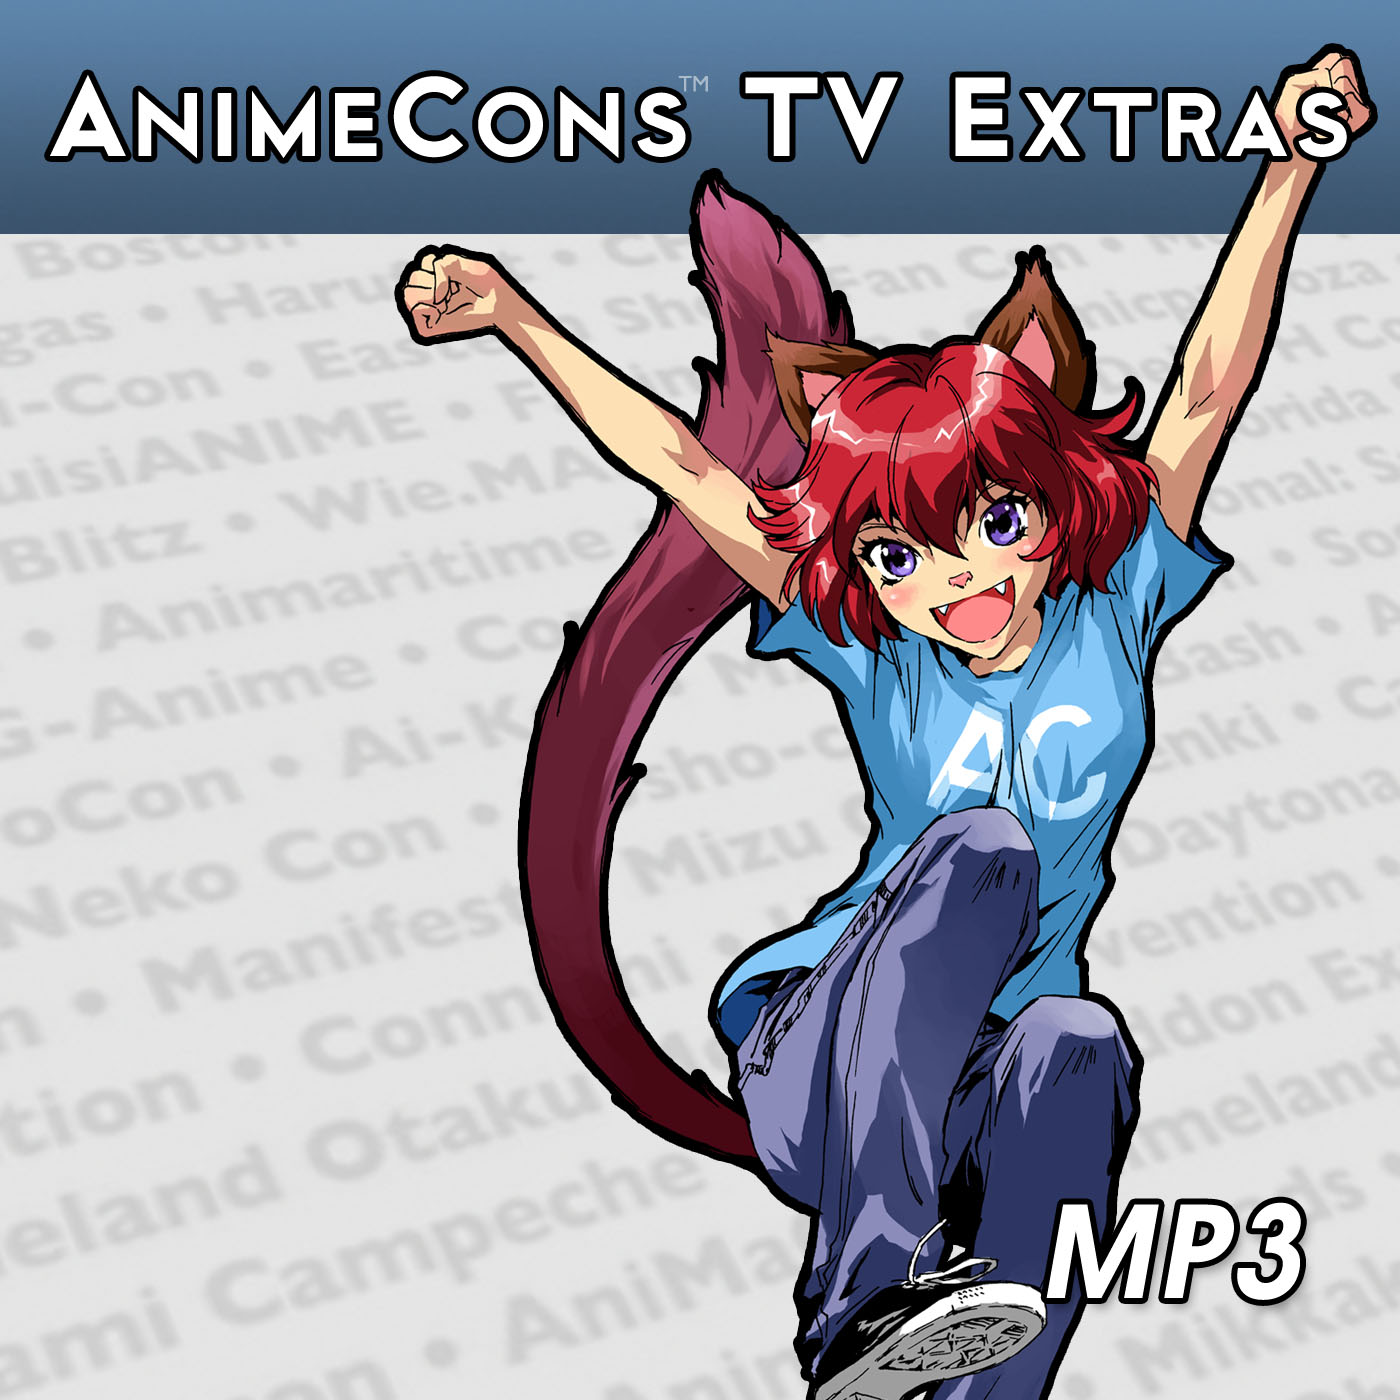 AnimeCons TV Extras (MP3)